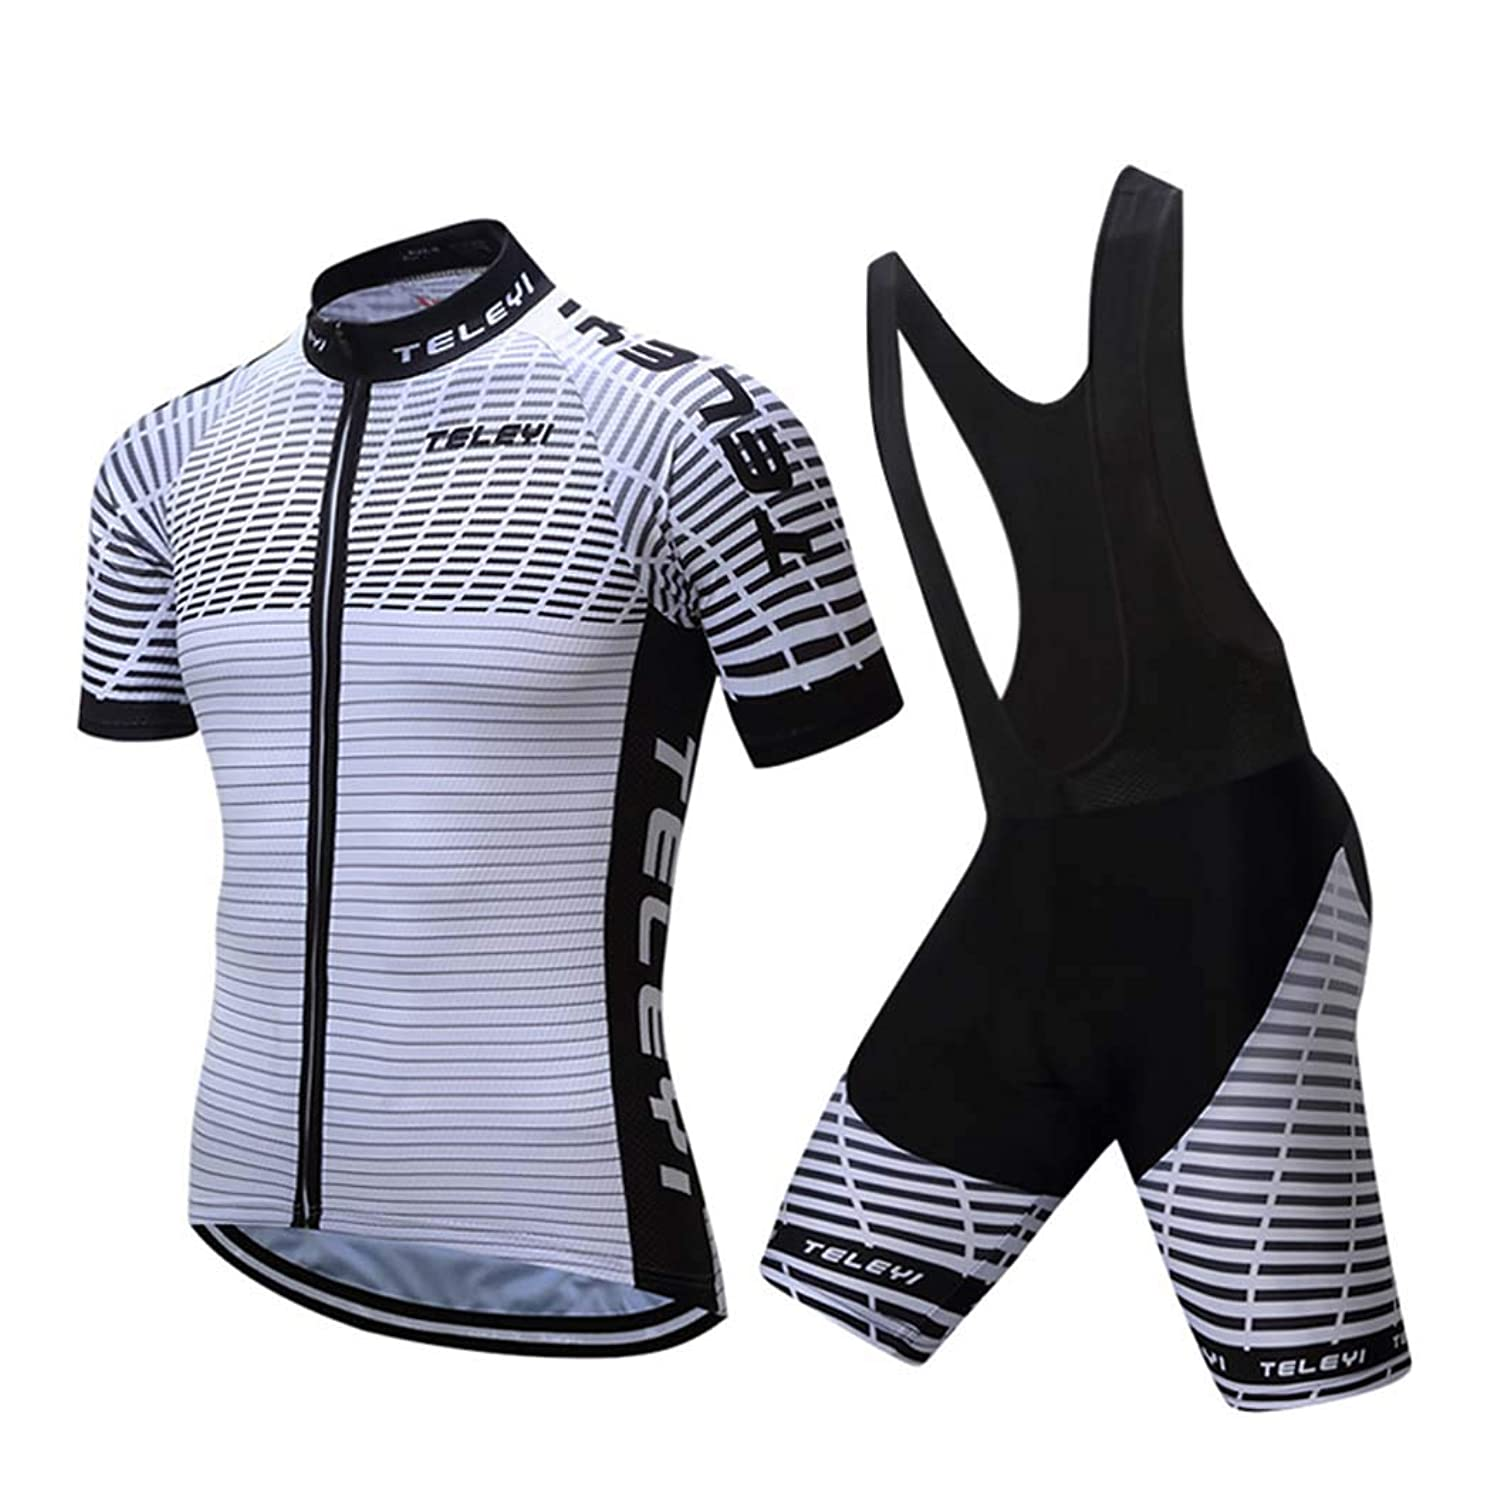 TELEYI Biker Shorts, Cycling Jersey Mens Cycling Shorts Soft Breathable Quick-Dry with Padded for Outdoor Sports MTB Road Bicycle,B,XXL